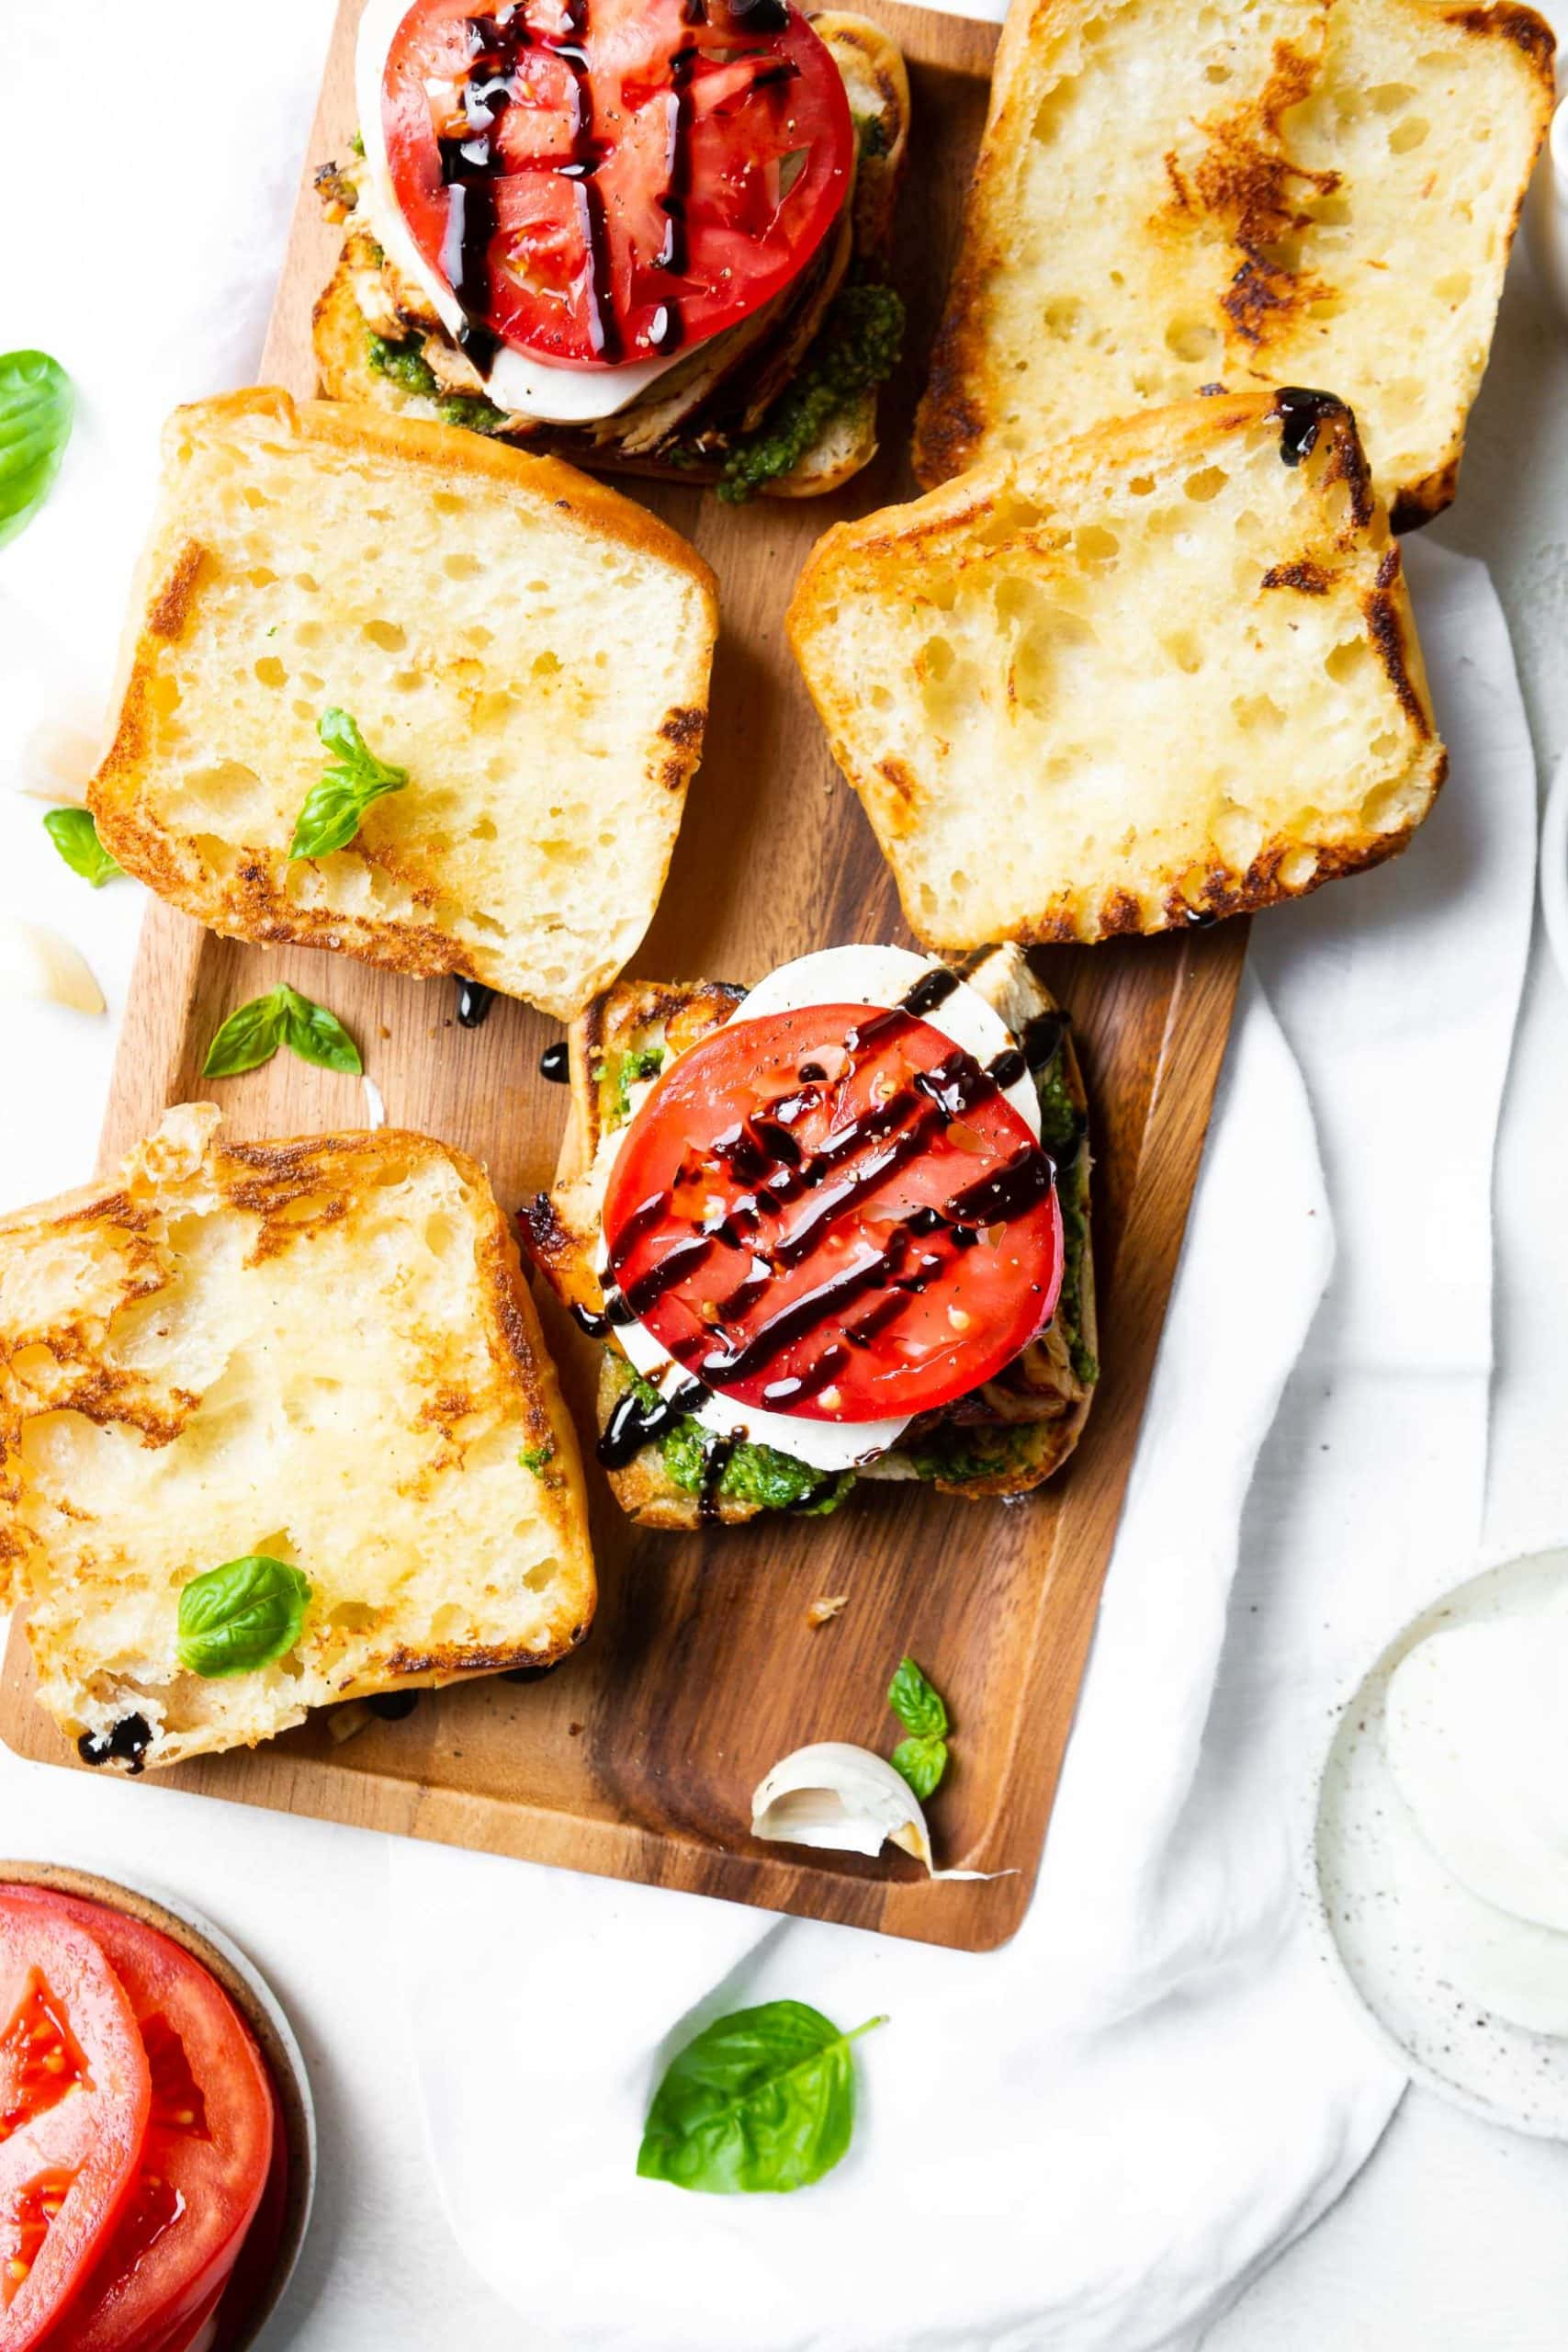 a photo of a ciabatta bun topped with pesto, fresh mozzarella, a tomato slice and a balsamic glaze with the top bun of the sandwich sitting next to it.